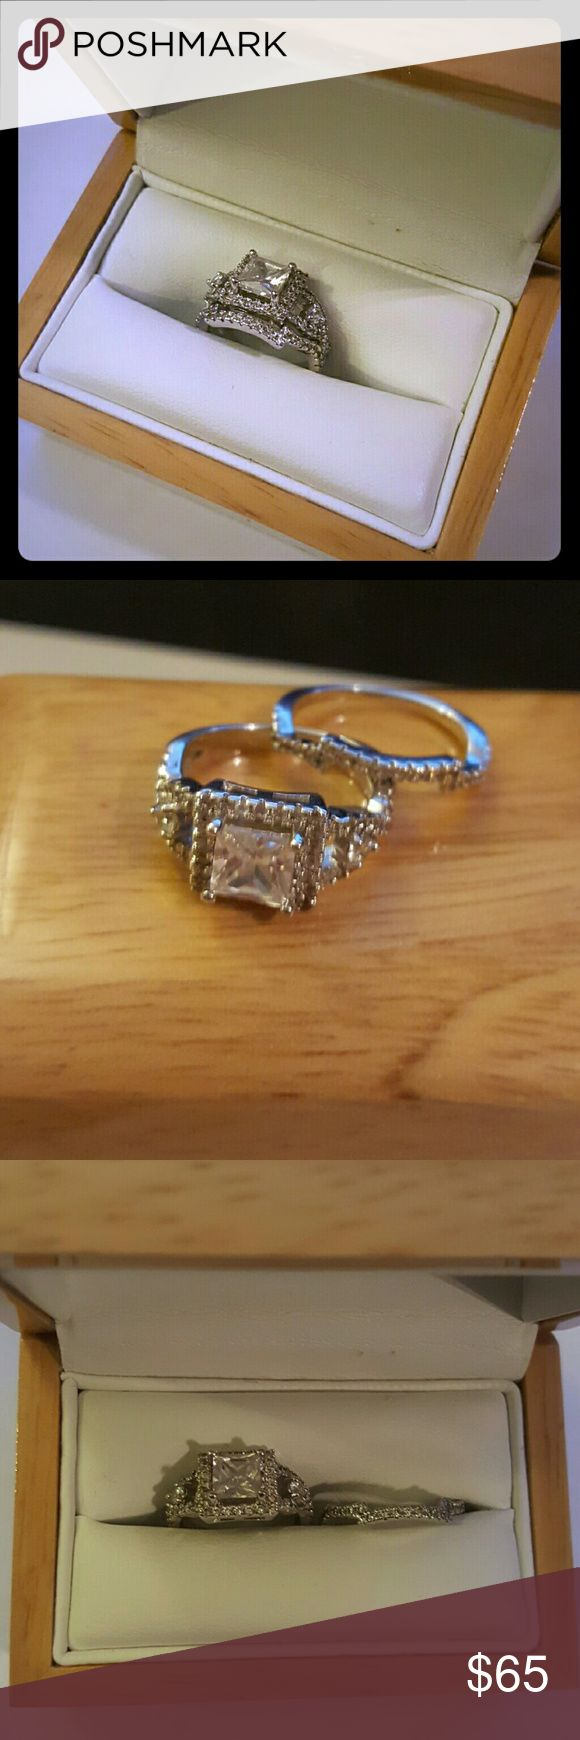 Sale⬇Engagement ring connected band set 5.5 Wedding Engagement  set from Neiman Marcus  925 Silver and clear CZ stones (stamped)  2 rings band and engagement ring size 5 - 5.5 Wooden box not included if on sale Neiman Marcus Jewelry Rings